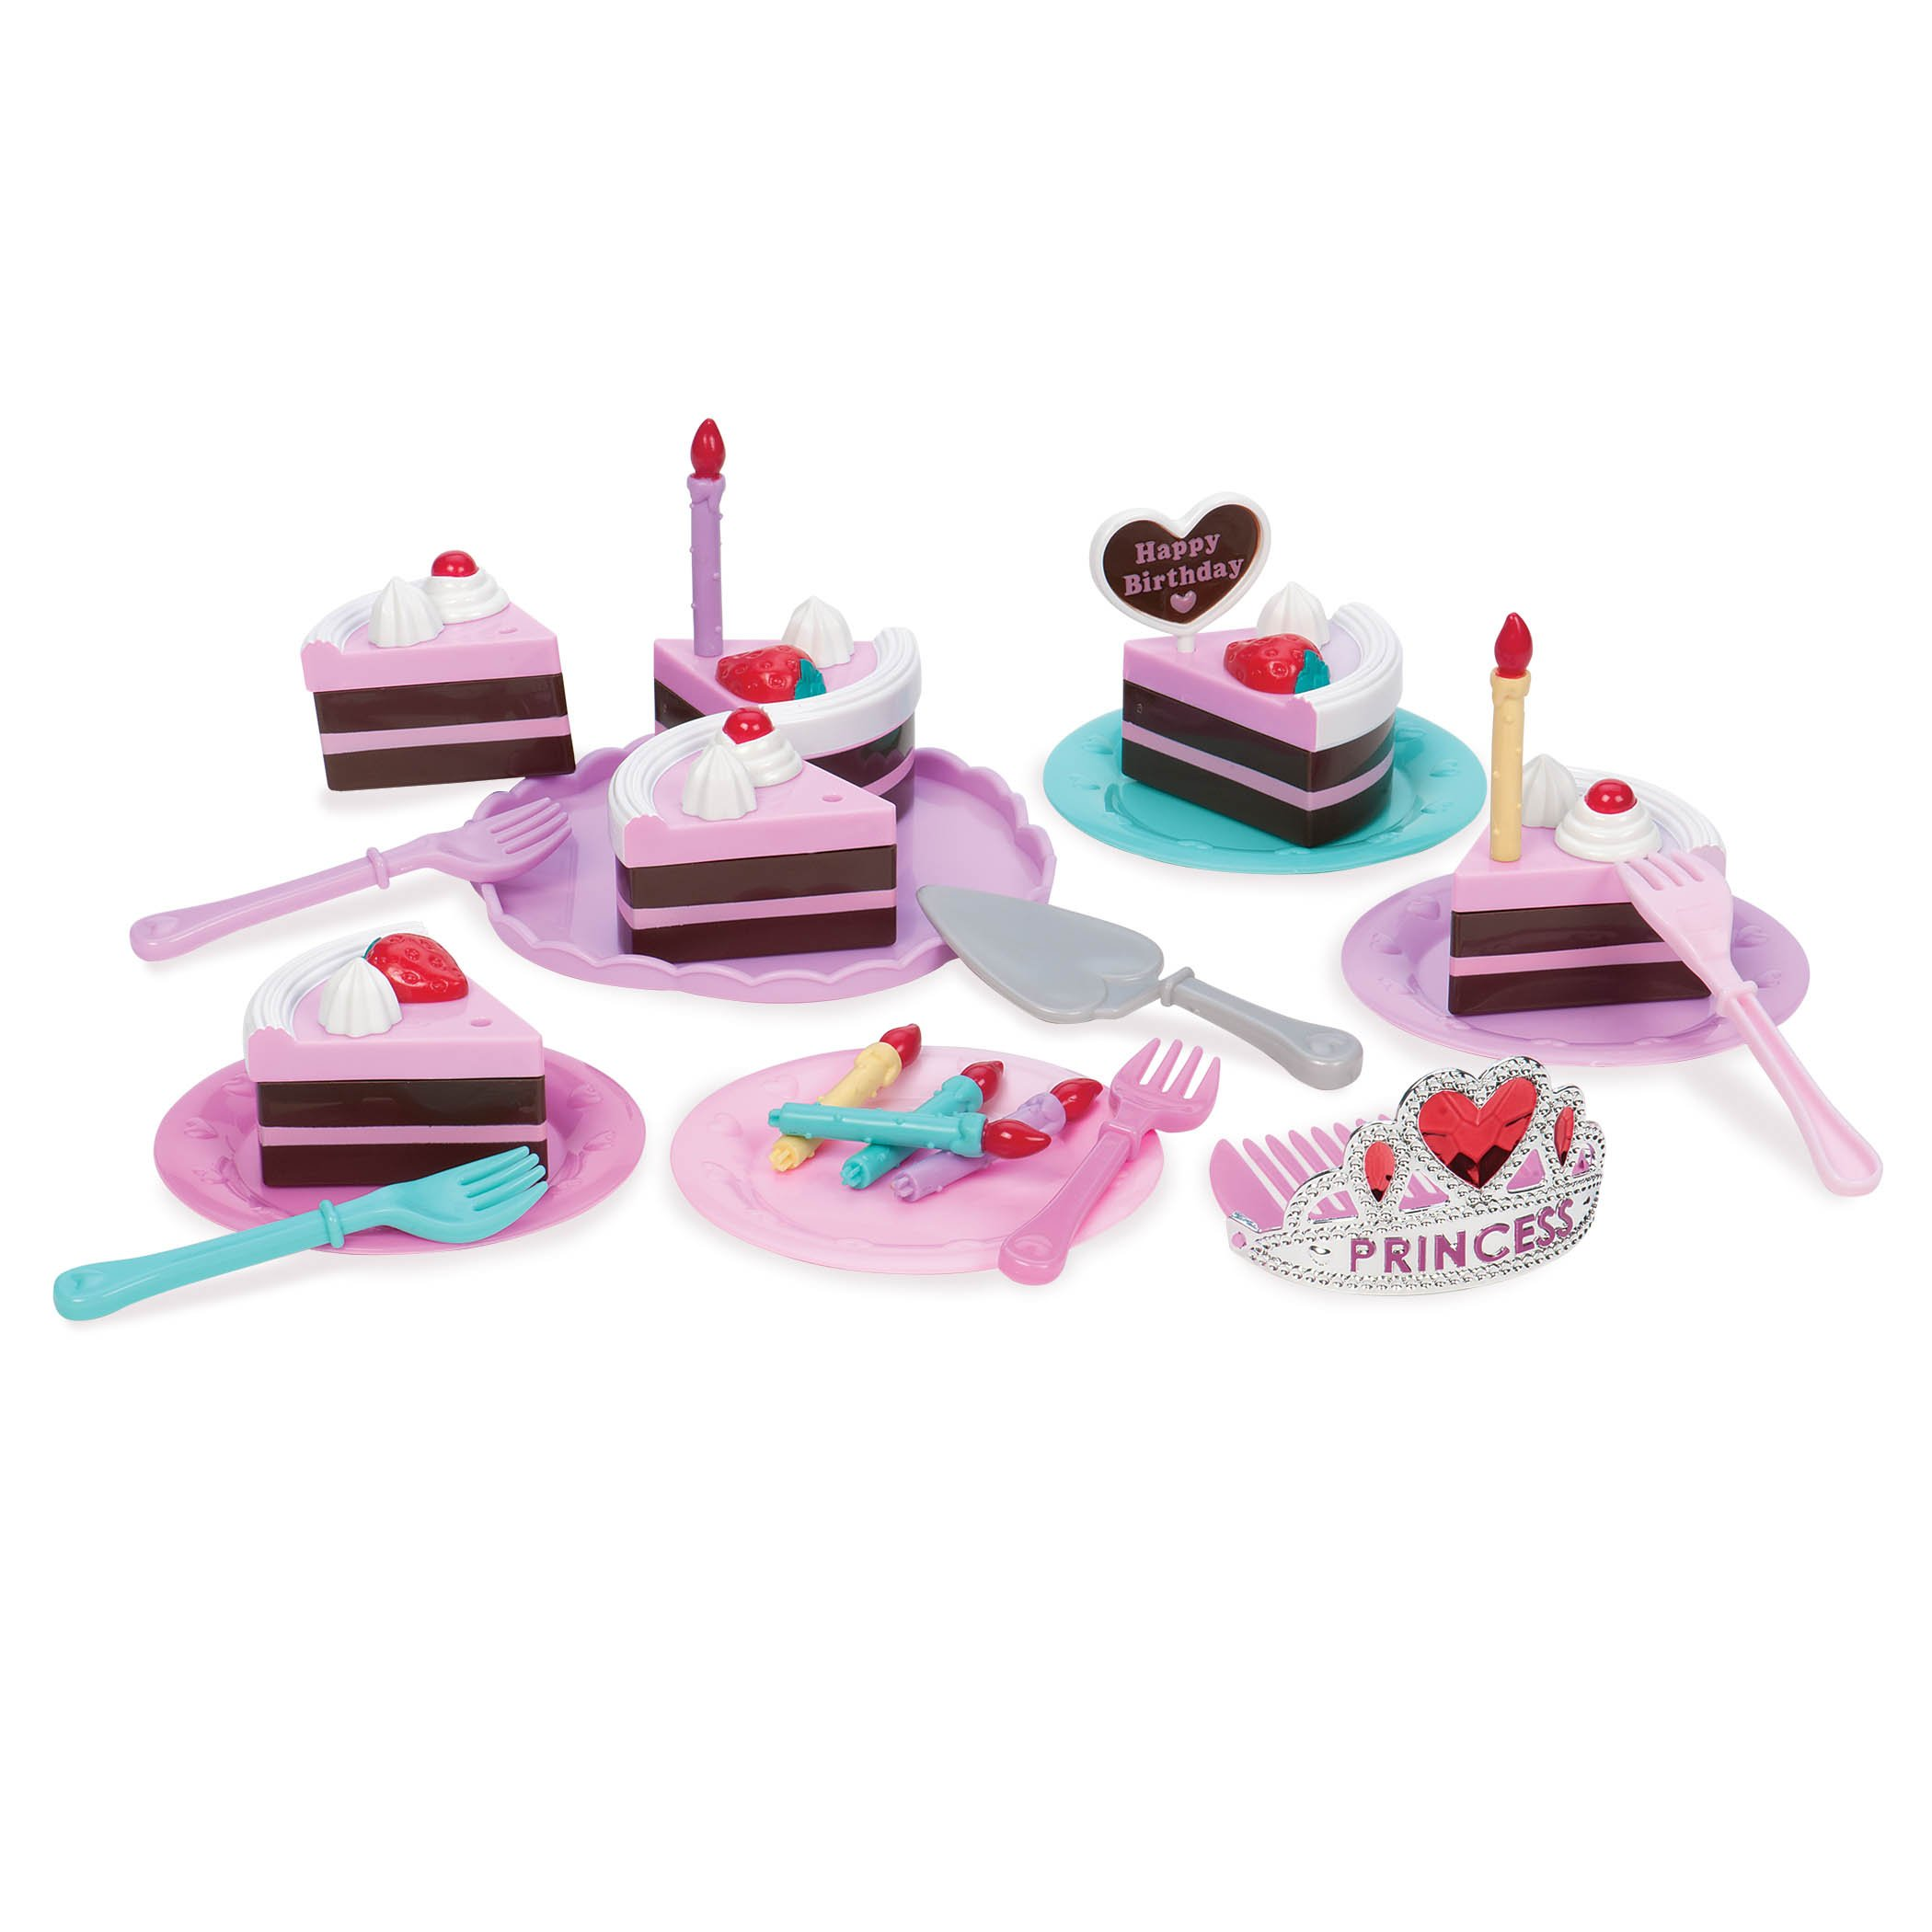 Play Circle by Battat Princess Birthday Party - Pretend Play Birthday Cake with Candles, Dishes, & Princess Tiara - Play Food Sets for Toddlers Age 3 Years & Up (Pack of 24) by Play Circle by Battat